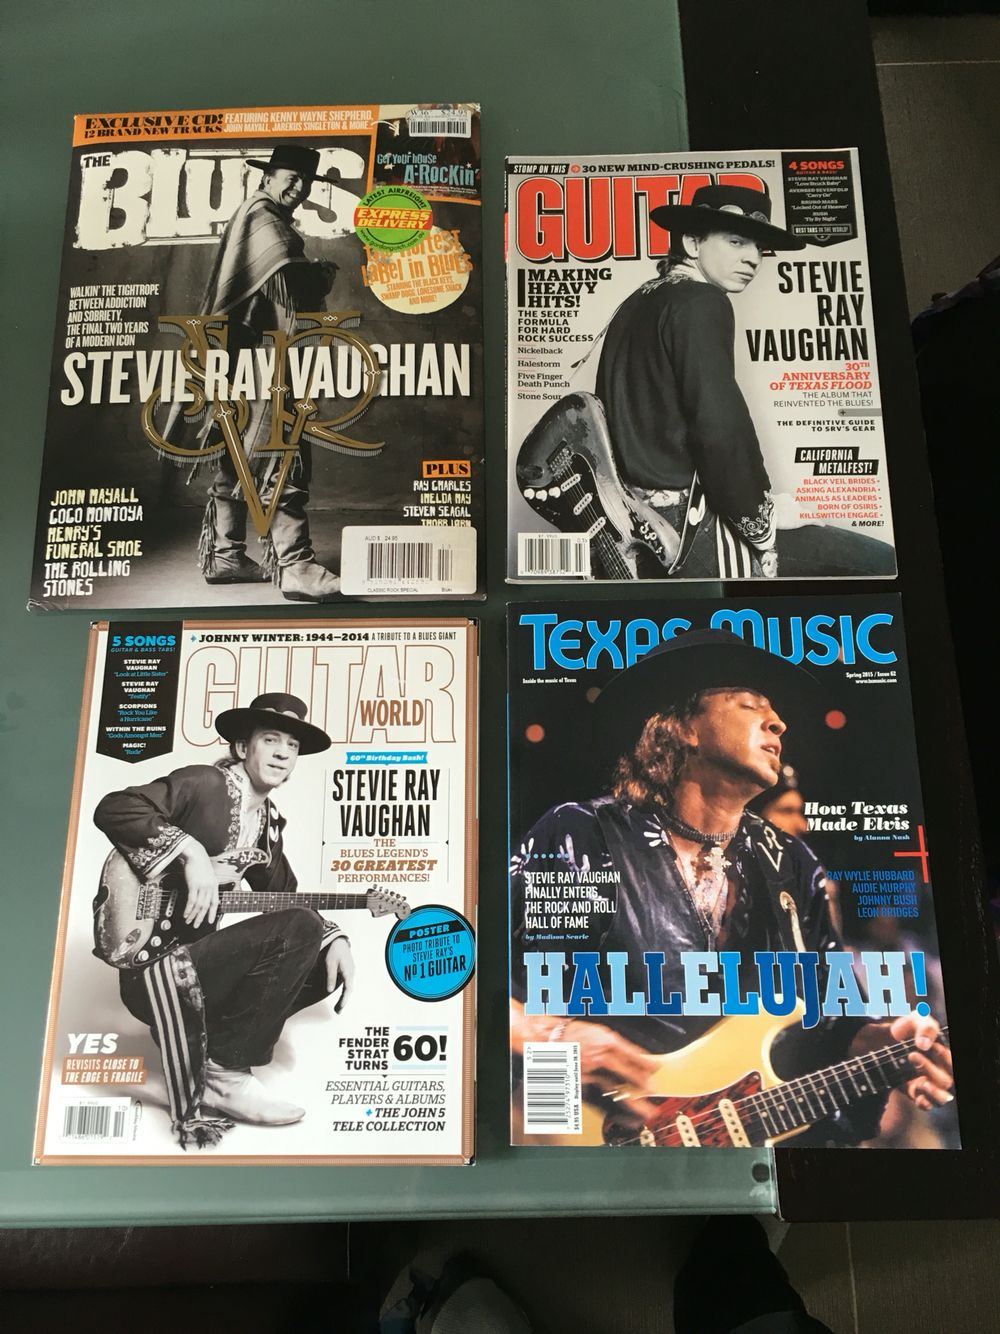 Stevie Ray Vaughan Magazine Cover Appearances Stevie Ray Vaughan Ray Vaughan Stevie Ray